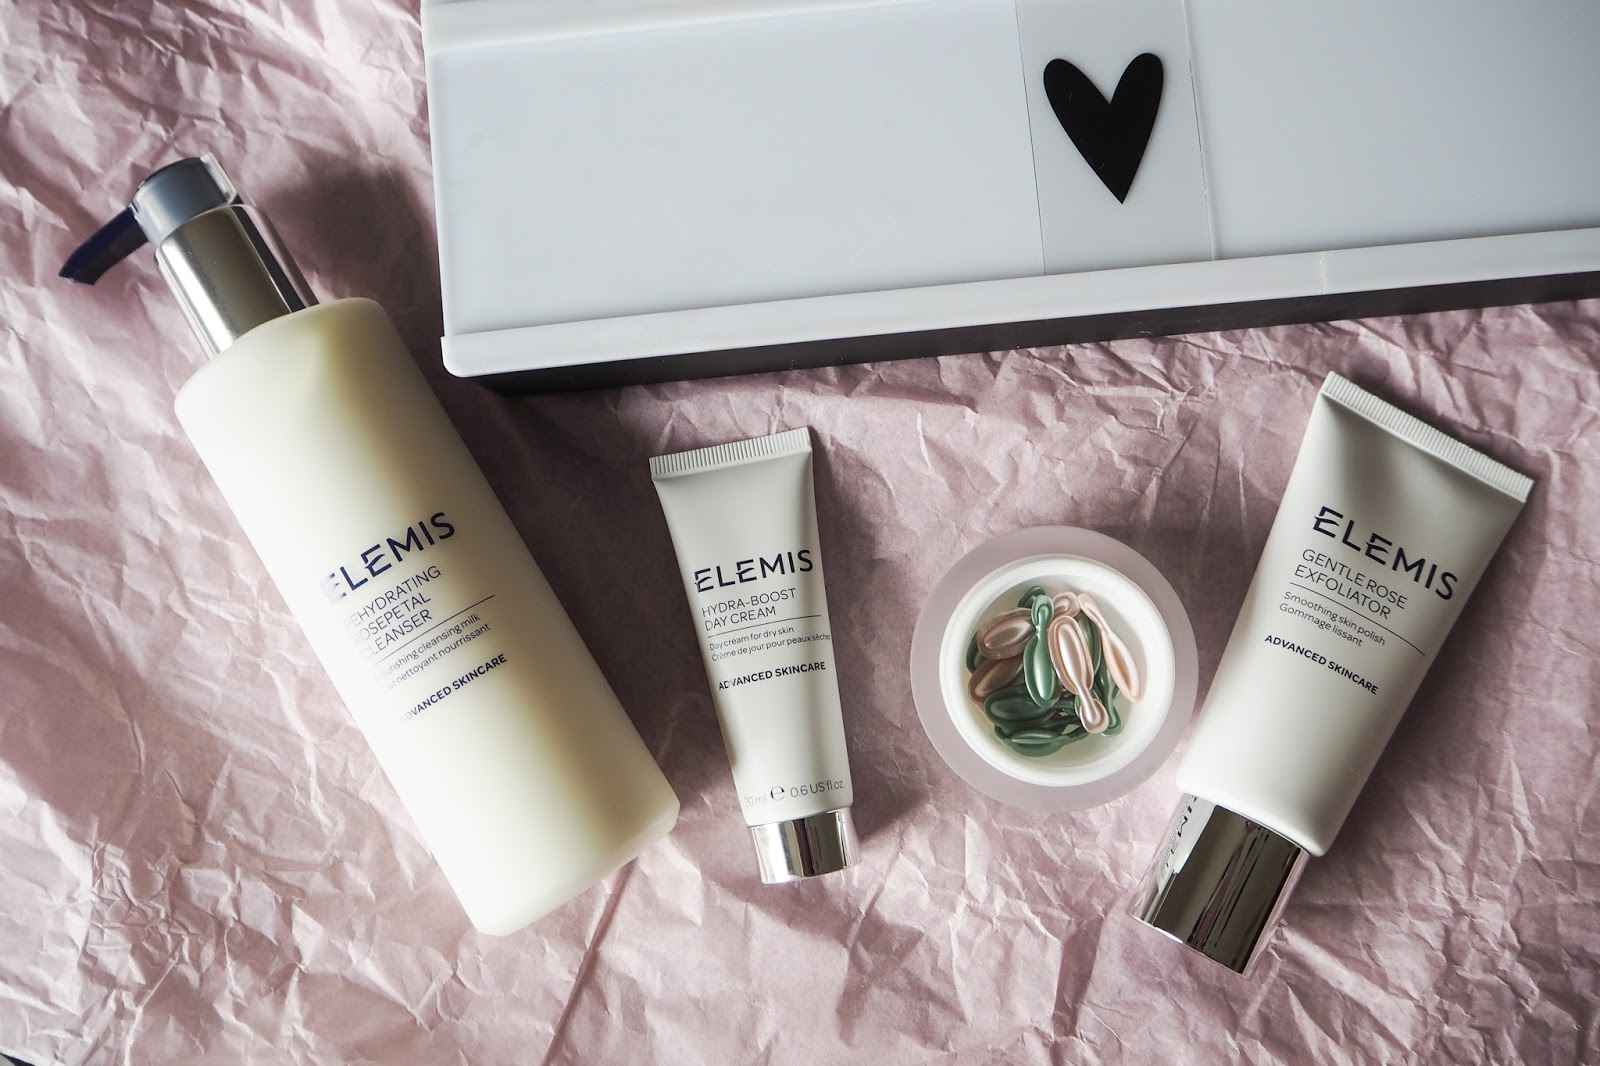 Elemis Skincare for Dry, Dehydrated Skin Review